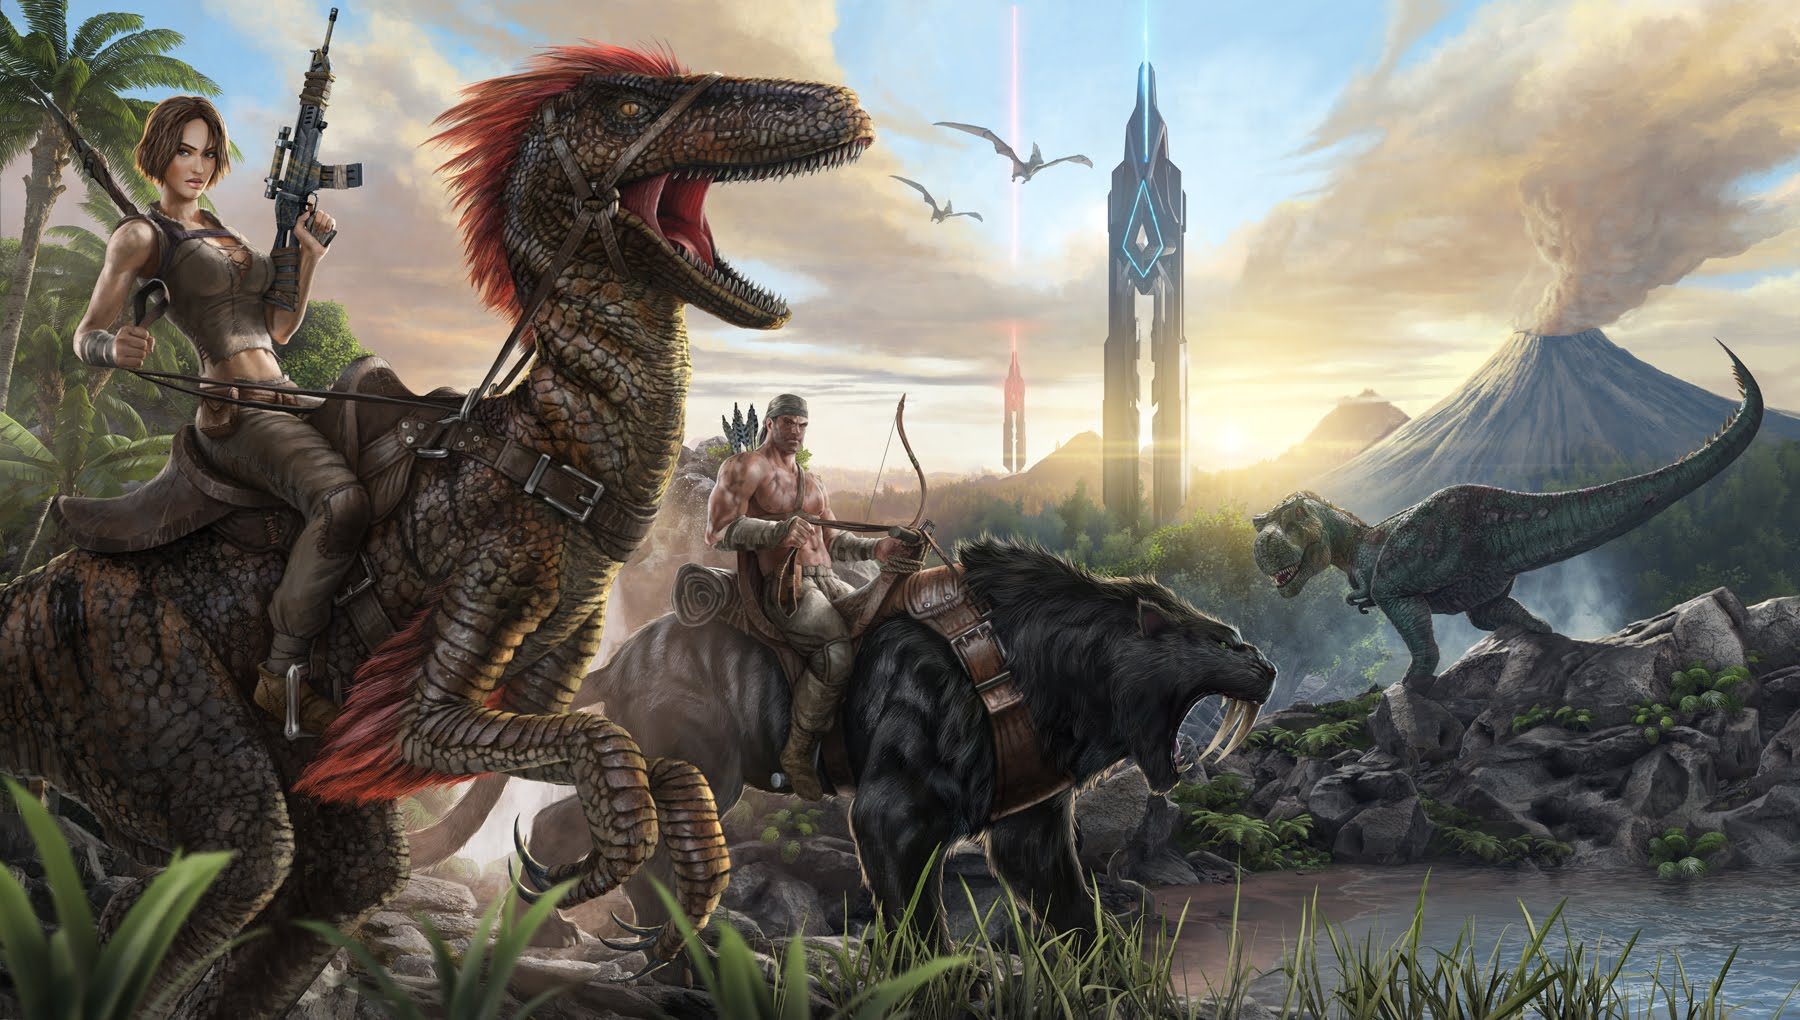 skal6j4iccfrkl3ch0yh Ark: Survival Evolved Lawsuit Could End In Removal Of Game